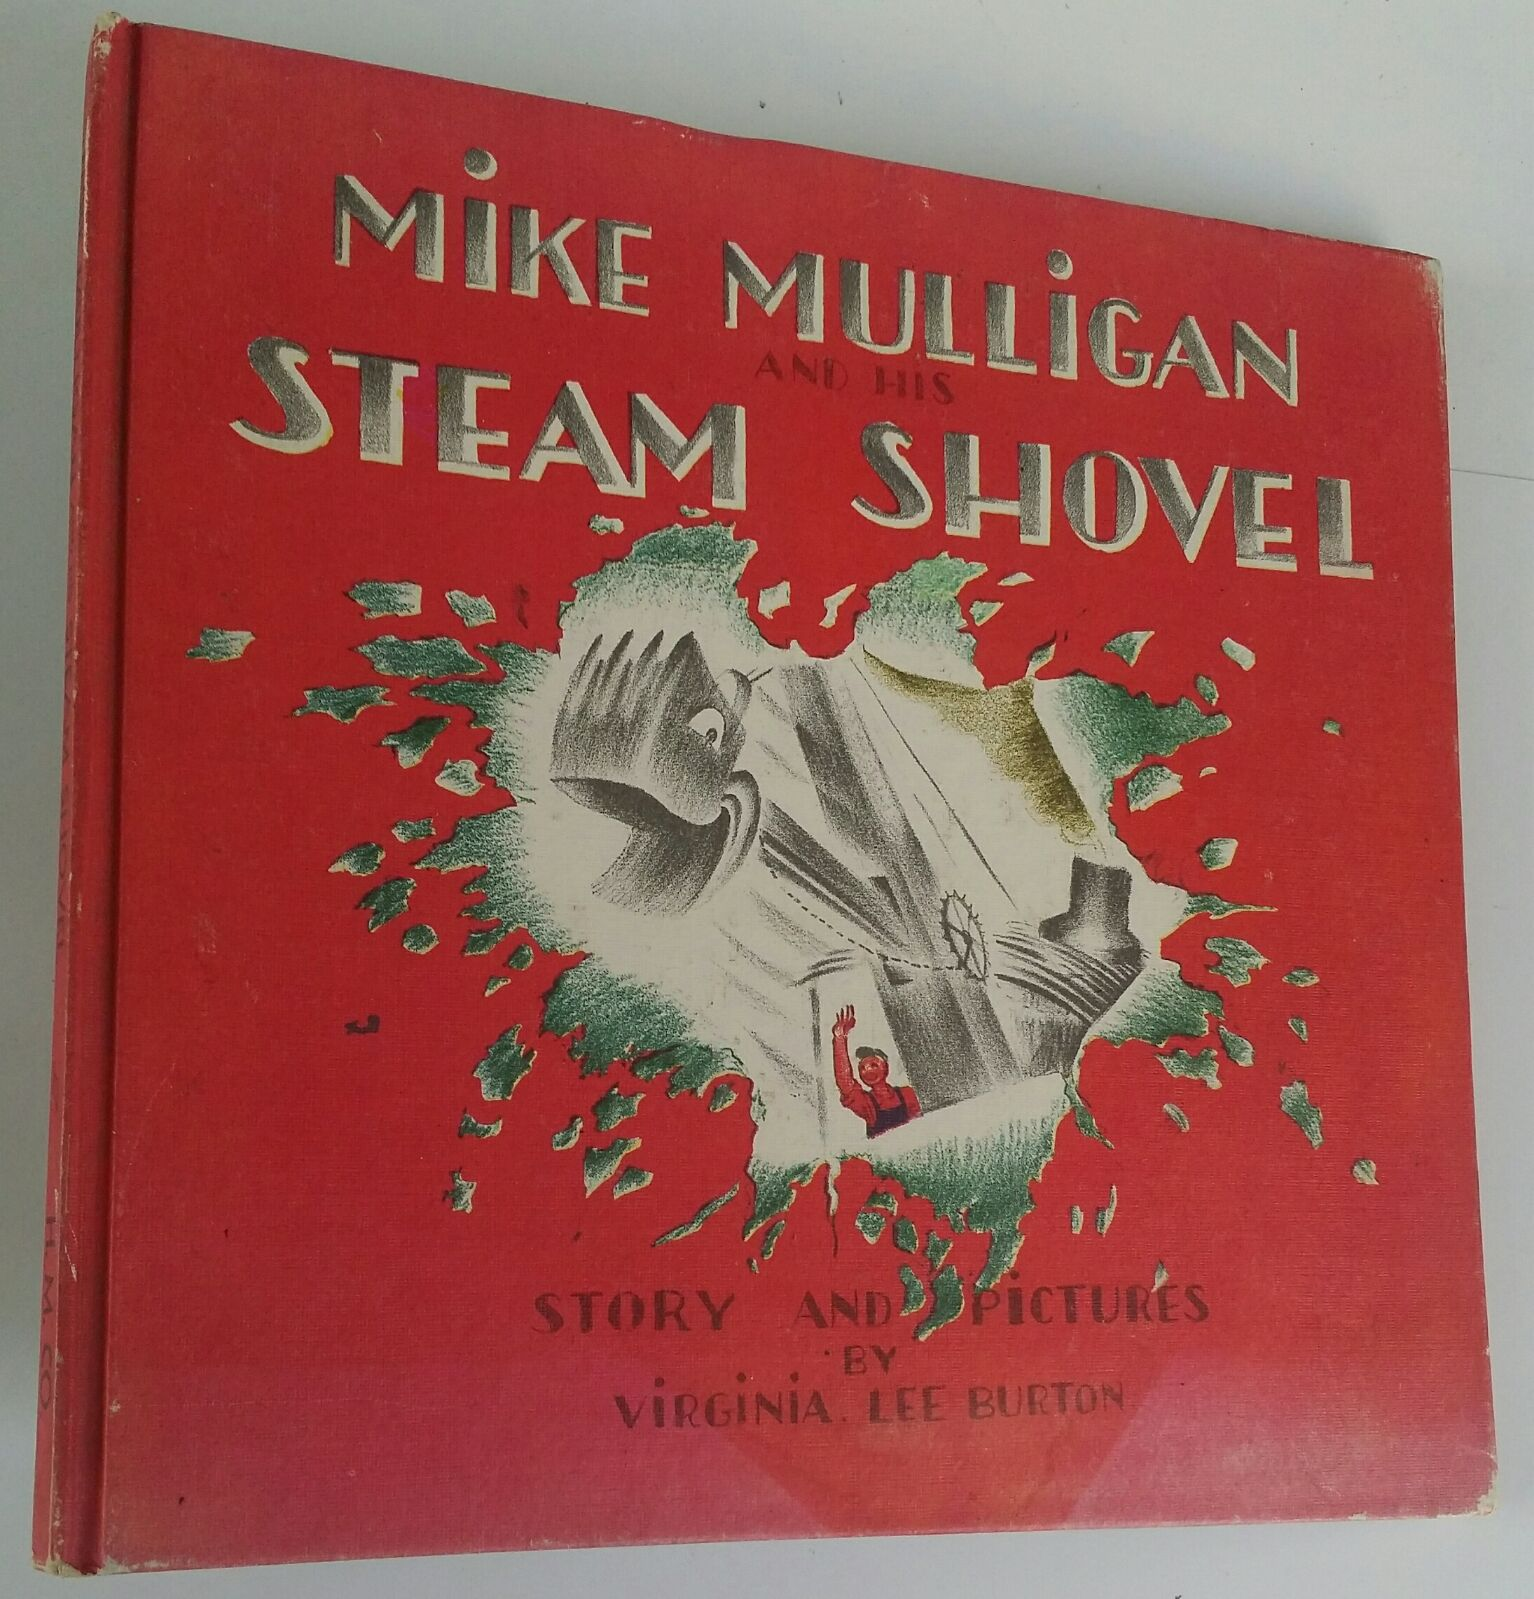 Mike Mulligan and his Steam Shovel Story